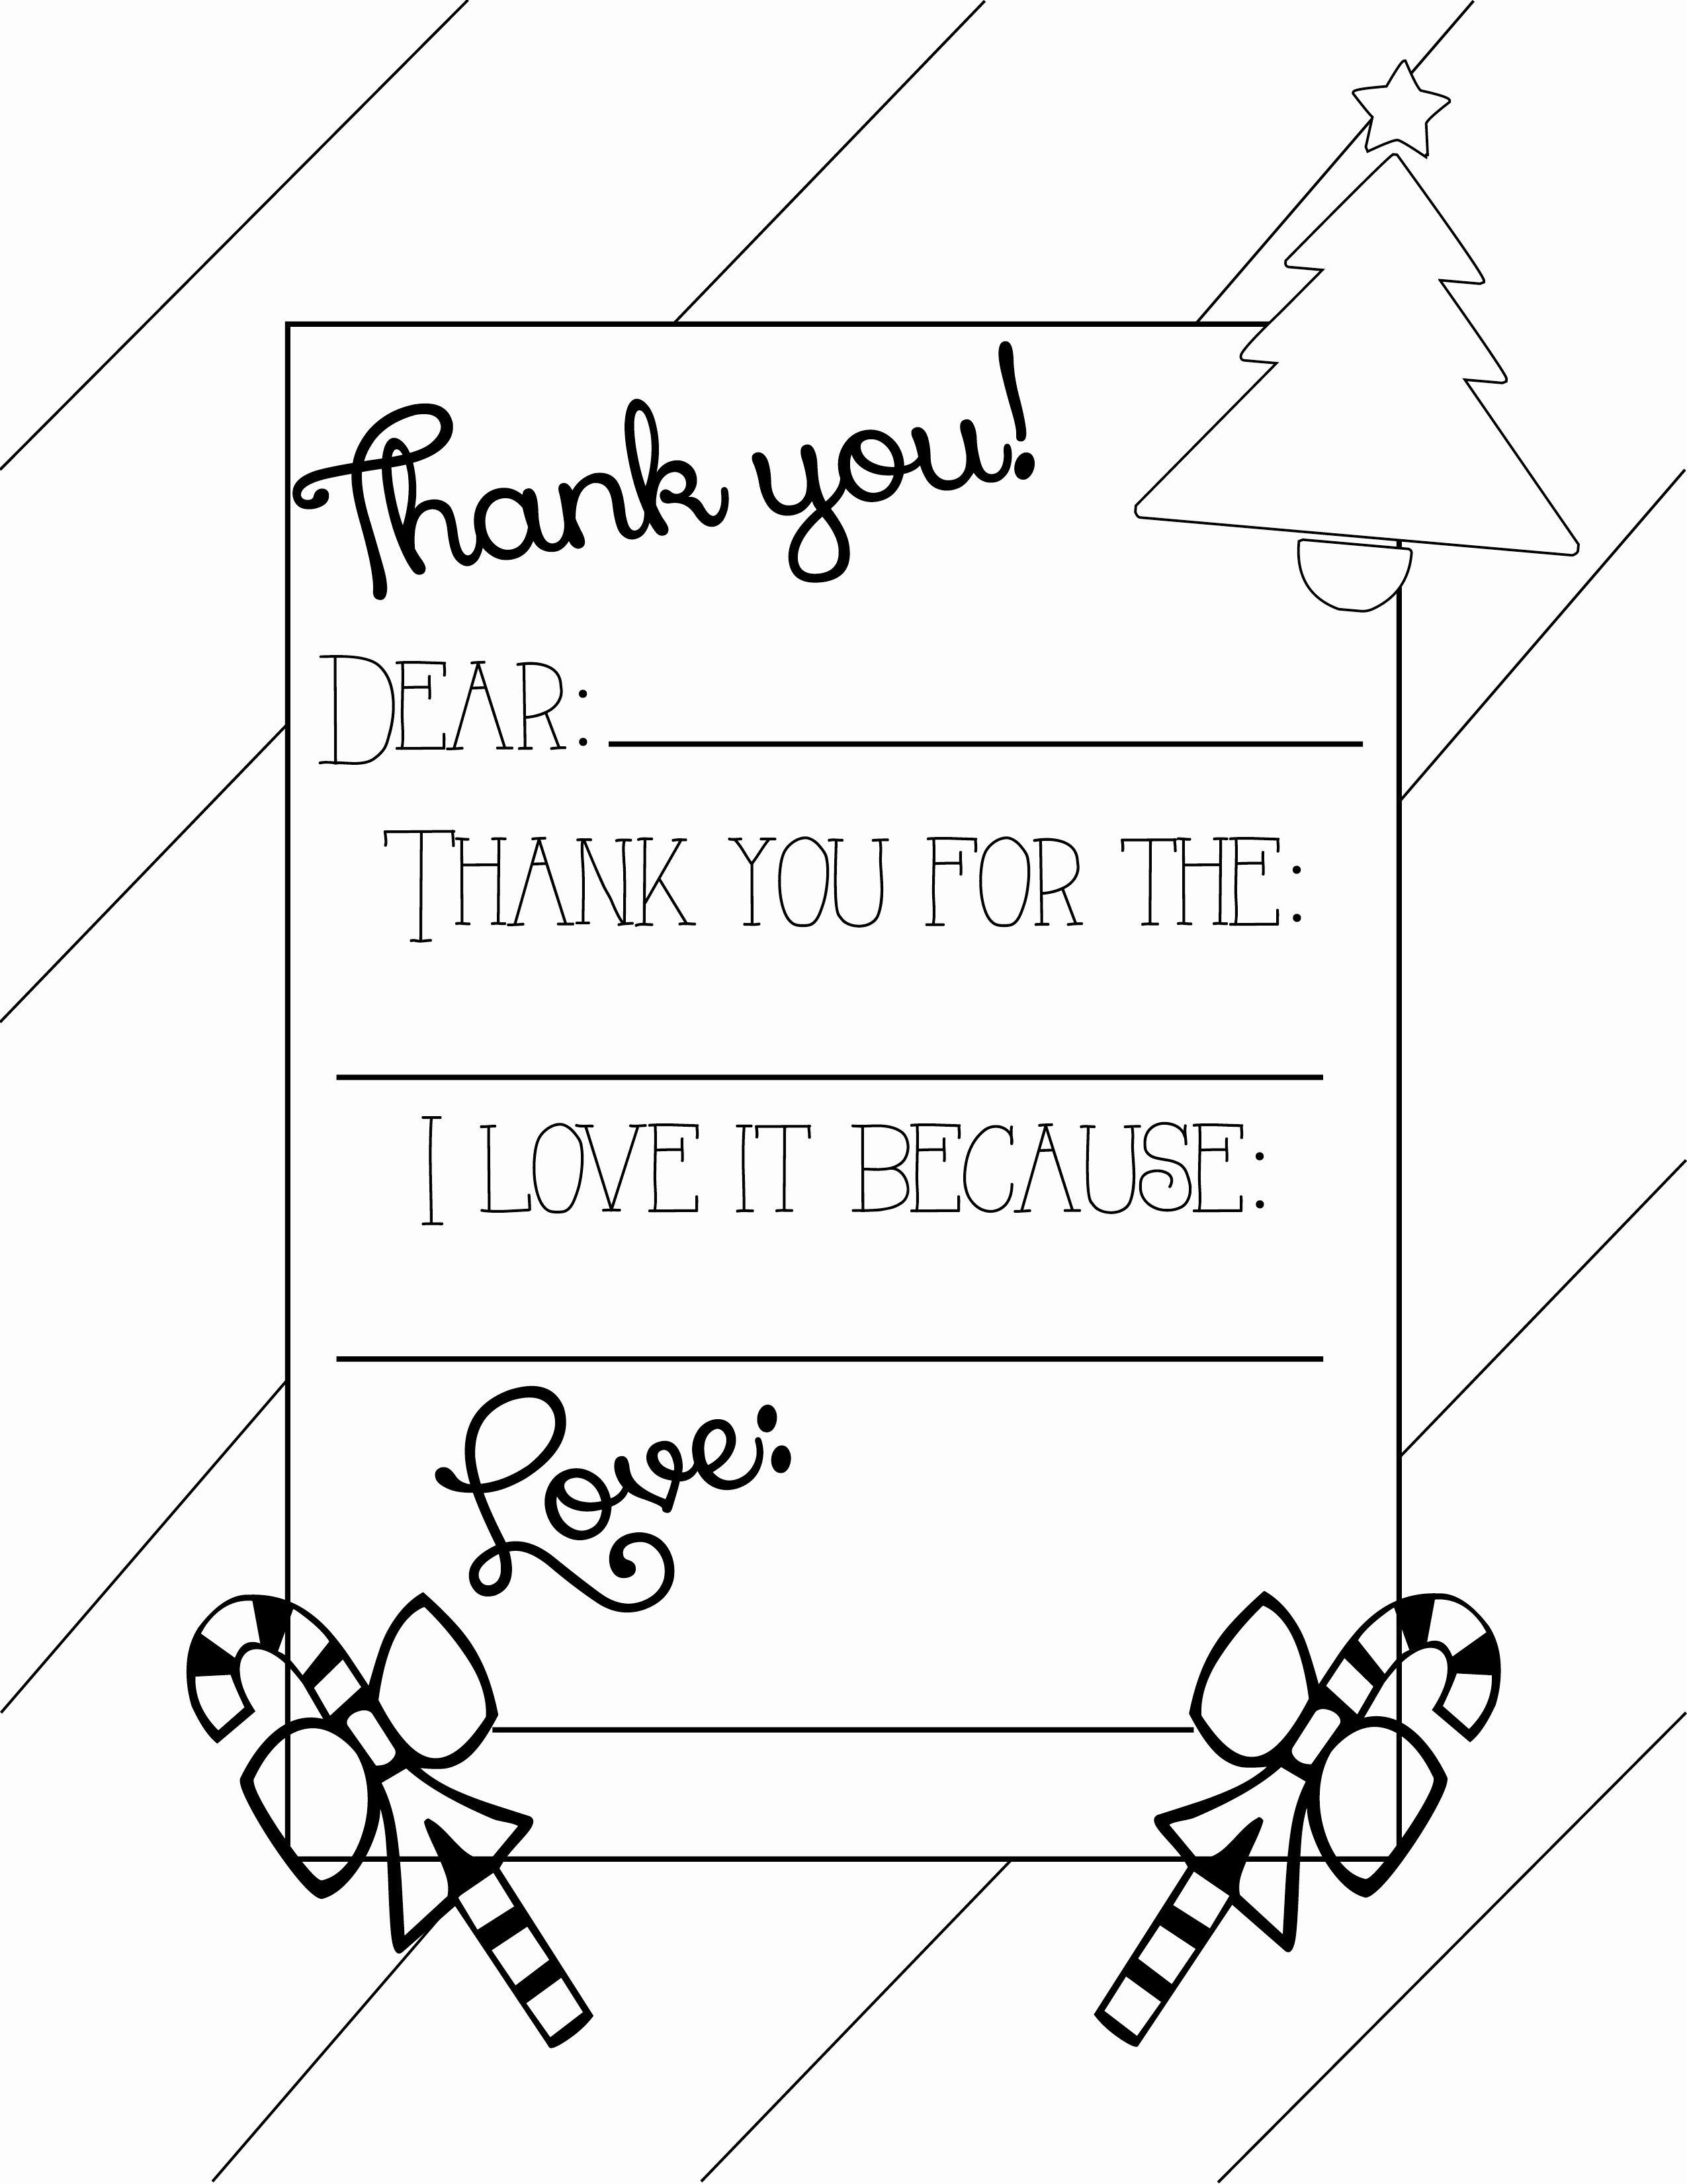 Teacher Appreciation Day Cards New Coloring Pages Thank You Teacher Coloring Pages Thank You Card Template Printable Thank You Cards Thank You Cards From Kids